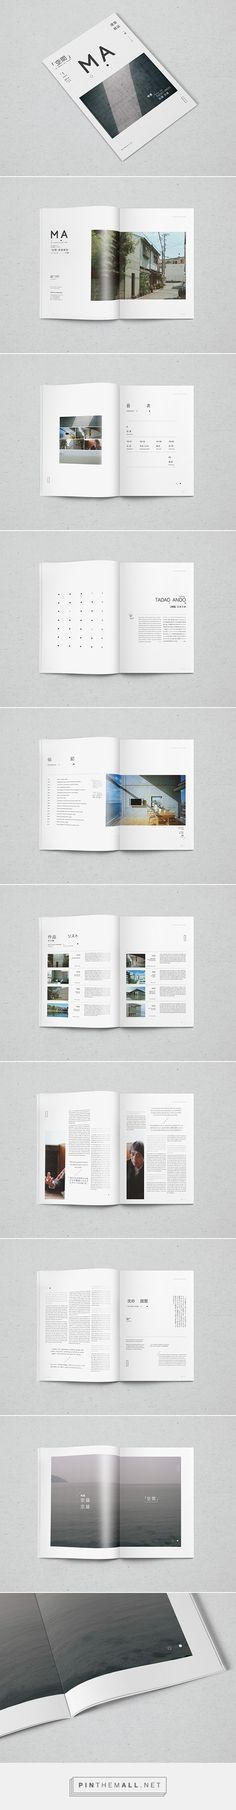 "MA [空間] - Architectural Magazine on Behance - created via <a href=""http://pinthemall.net"" rel=""nofollow"" target=""_blank"">pinthemall.net</a>"